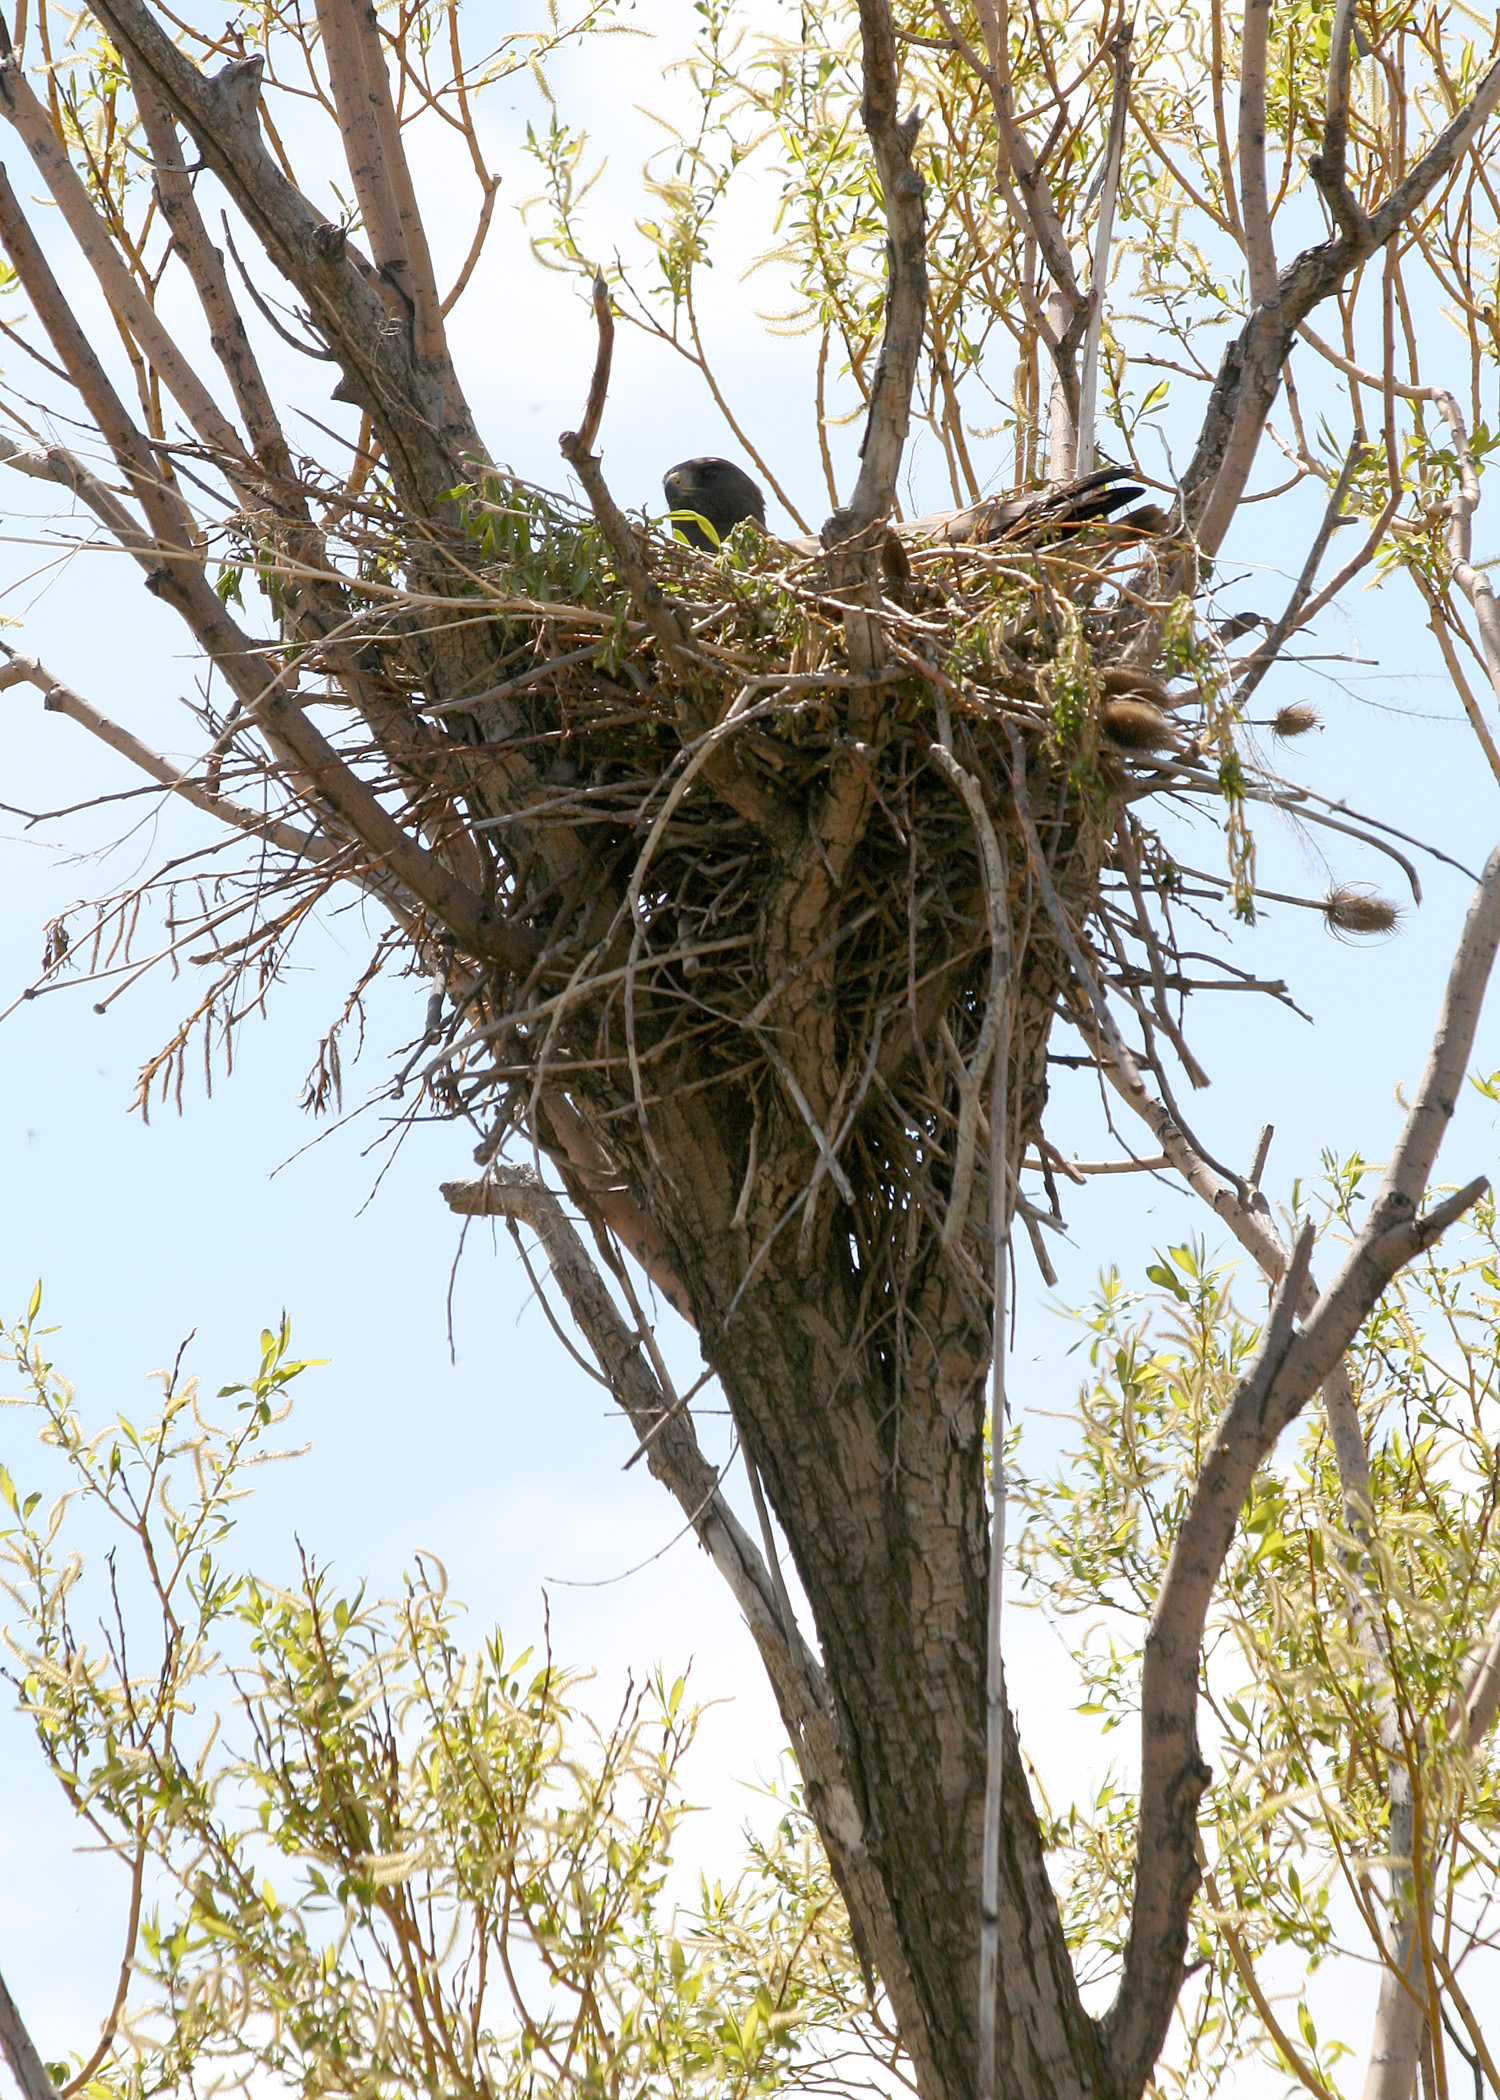 Dead Bird Nests Contain 36 Different Pesticides, Including DDT